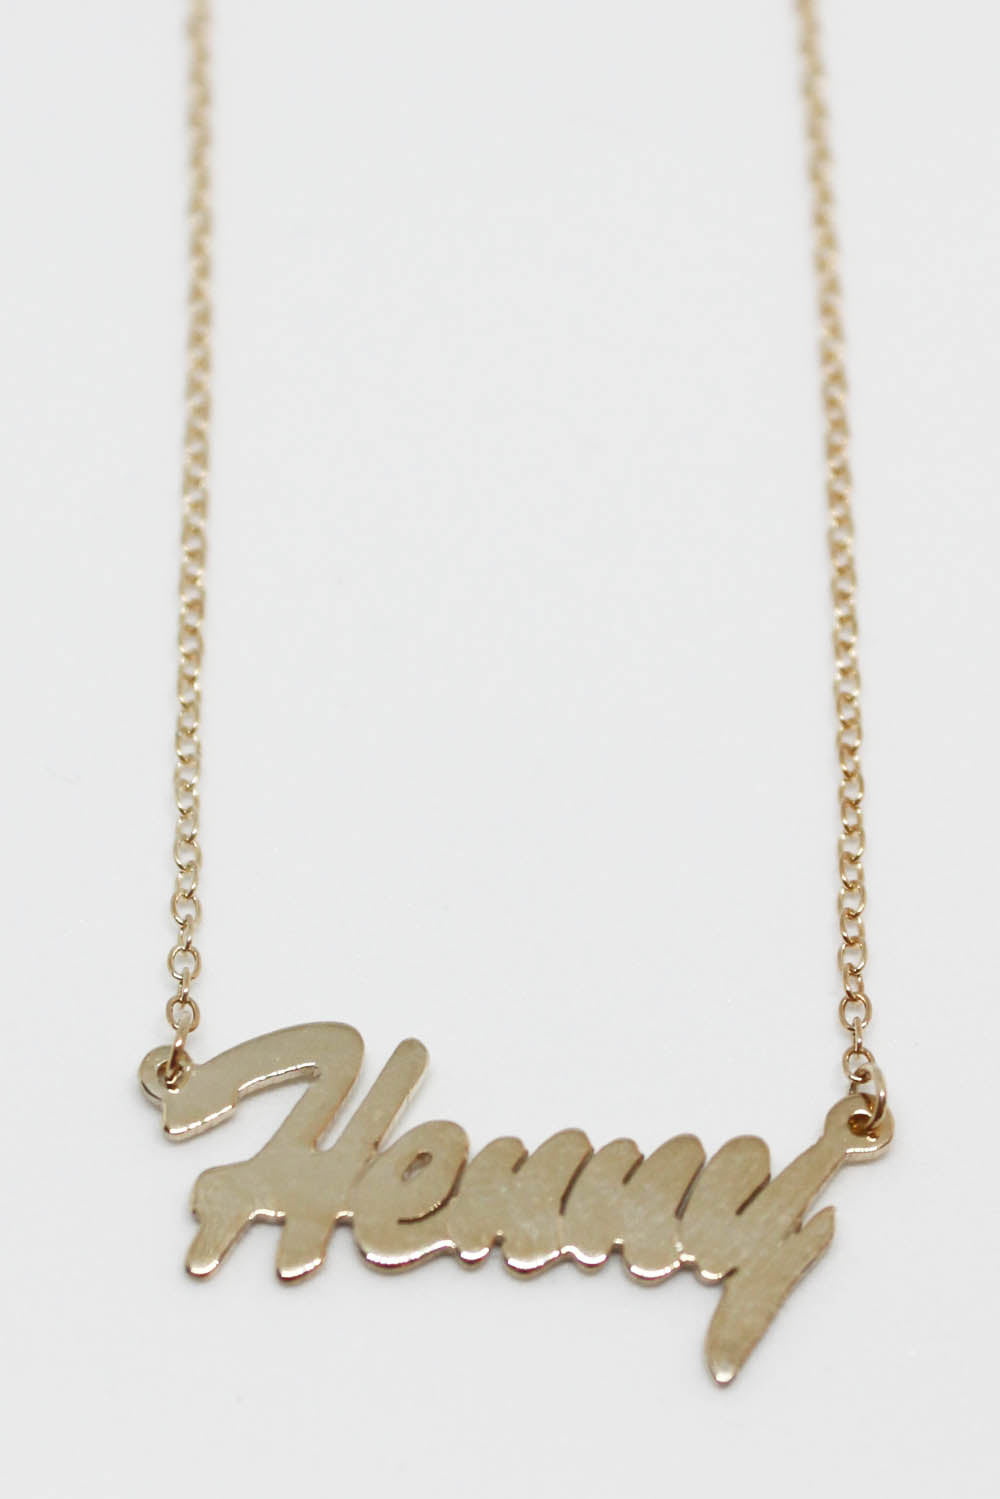 Queer Eye Henny Name Plate Necklace - Totally Good Time